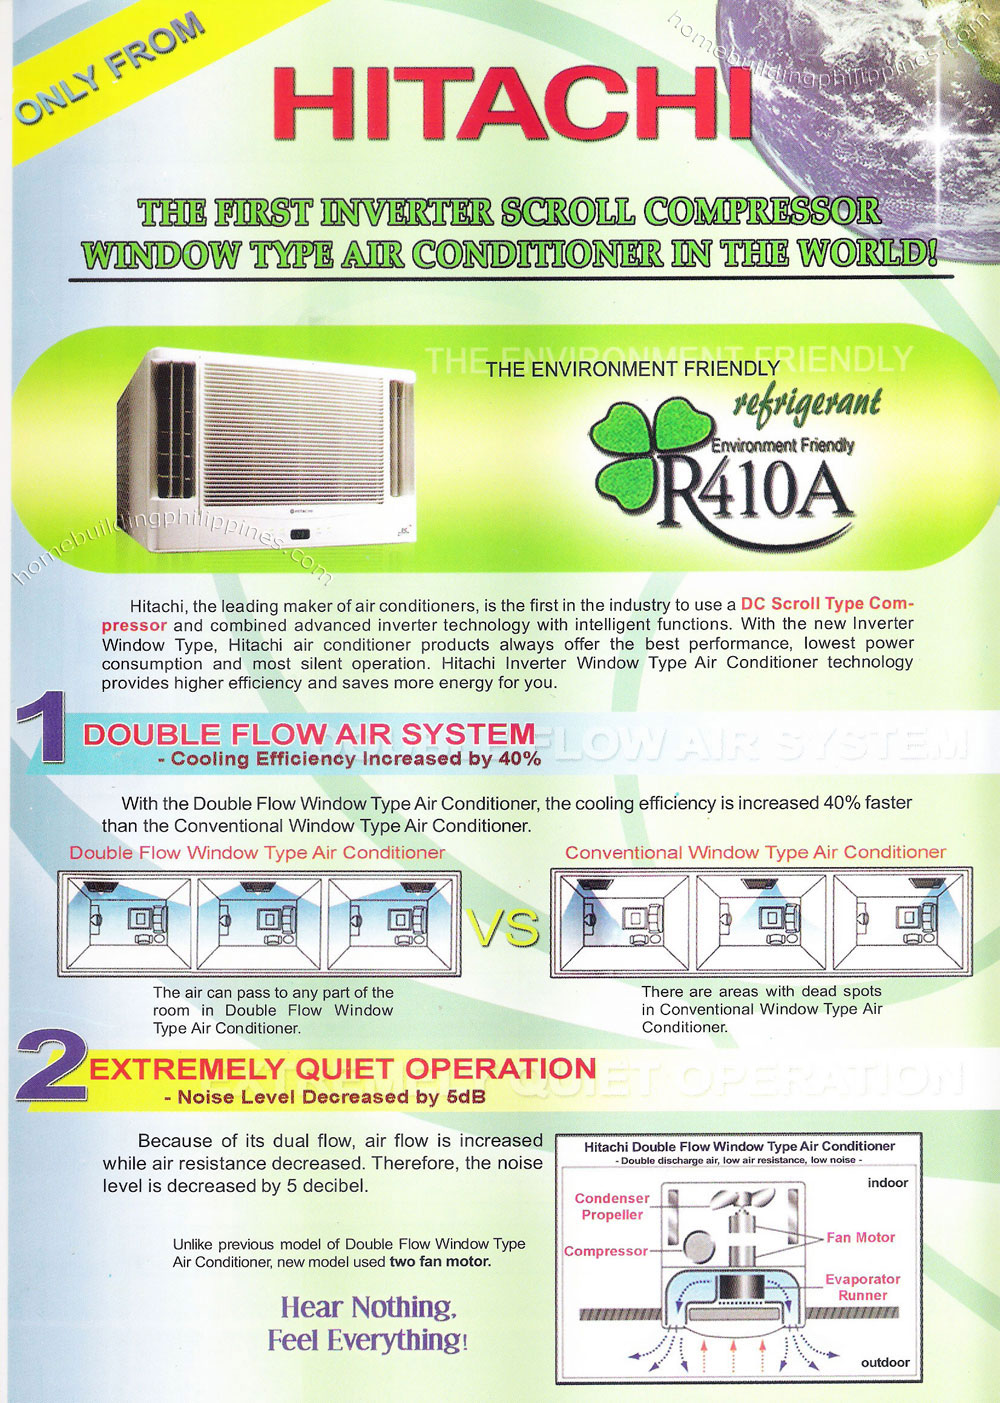 Air Conditioning Systems By Hitachi Philippines